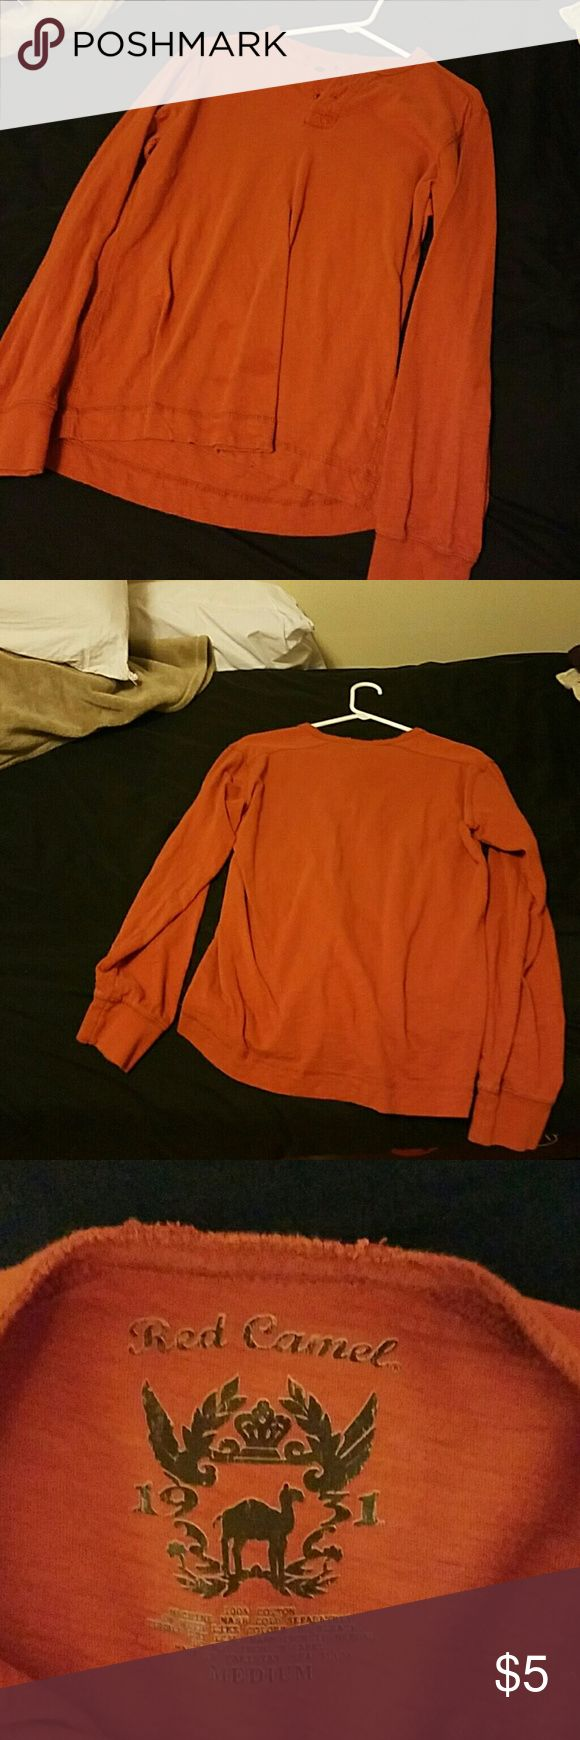 Red Camel Long Sleeve Shirt Shirt is in good condition long sleeve. Buttons on the front. Thin shirt Red Camel Shirts Tees - Long Sleeve